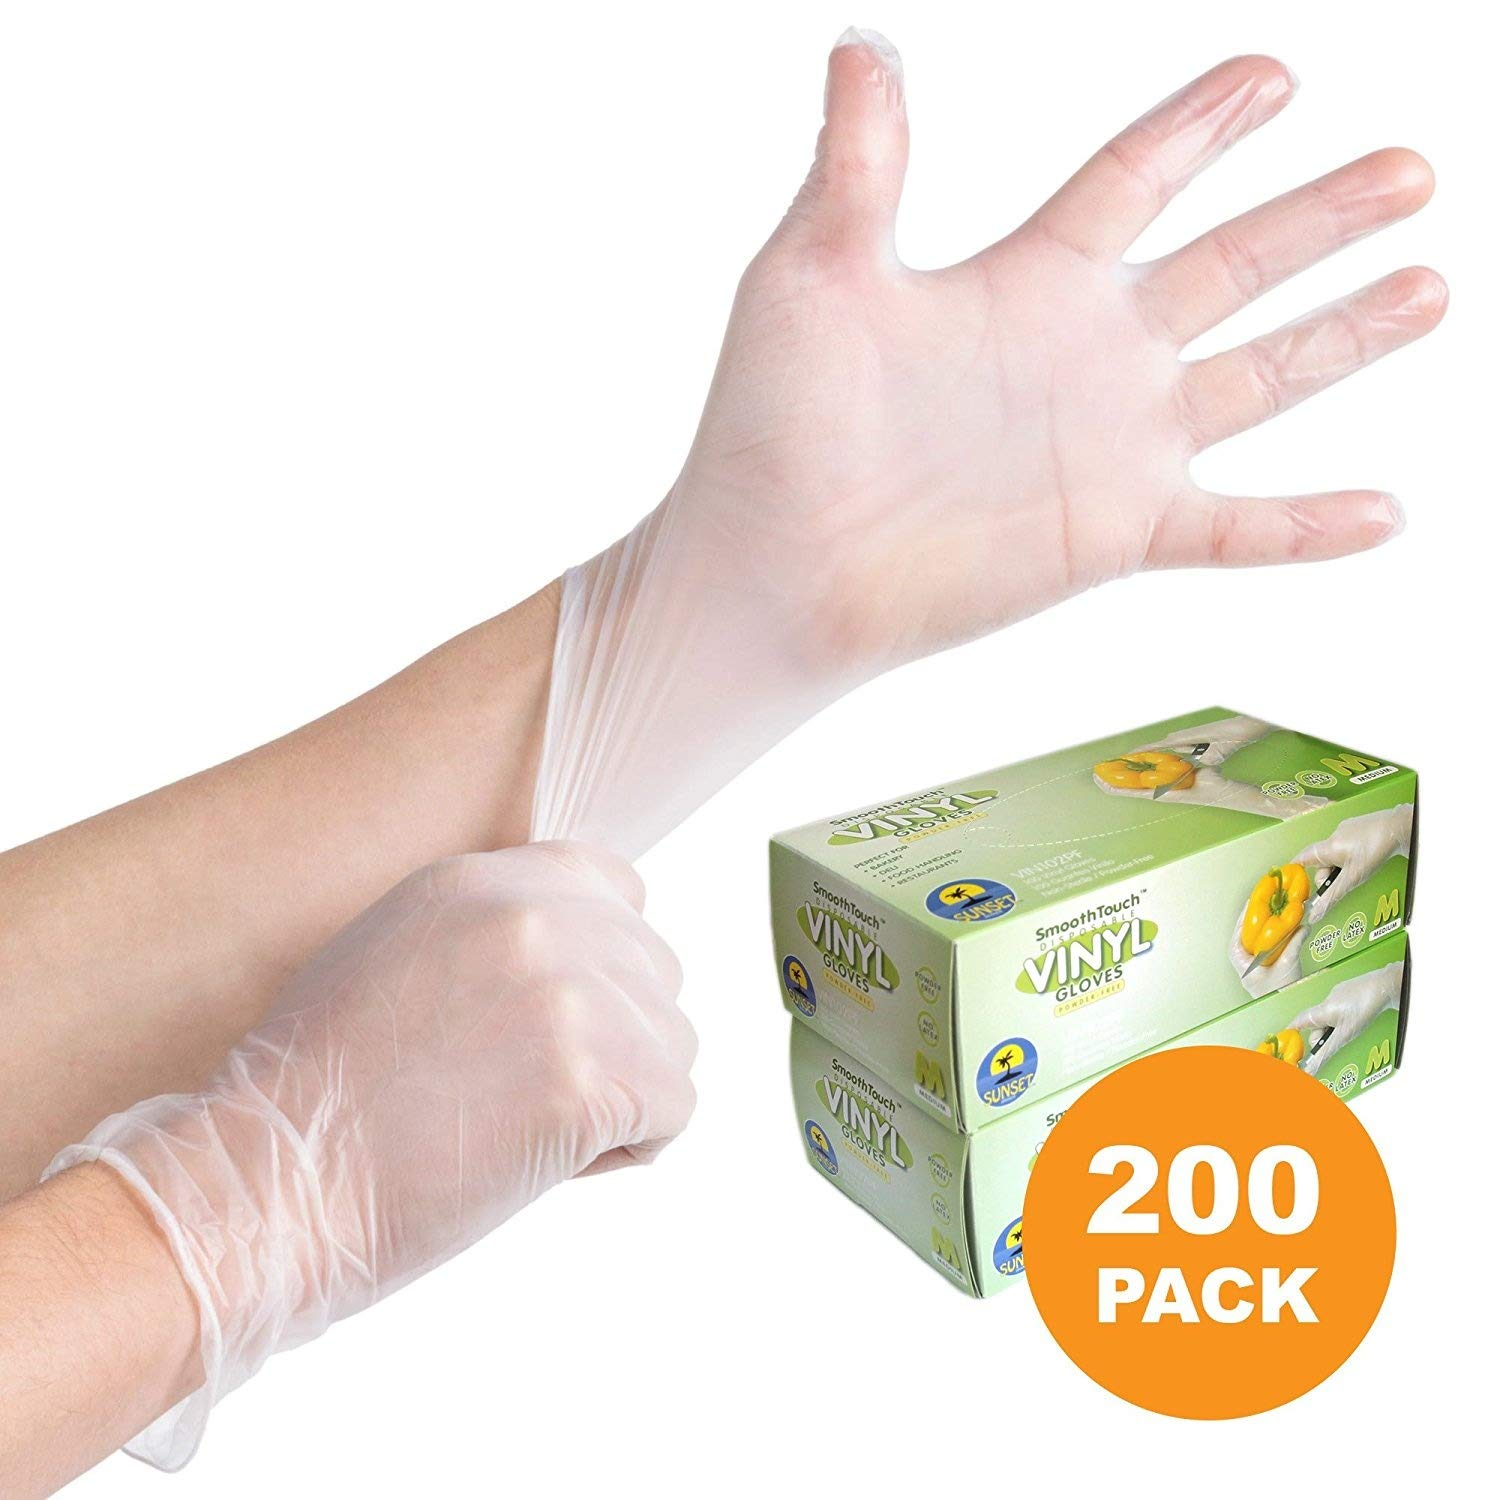 200 Disposable Viny Gloves, Non-Sterile, Poweder Free, Smooth Touch, Food Service Grade, Large Size [2x100 Pack]